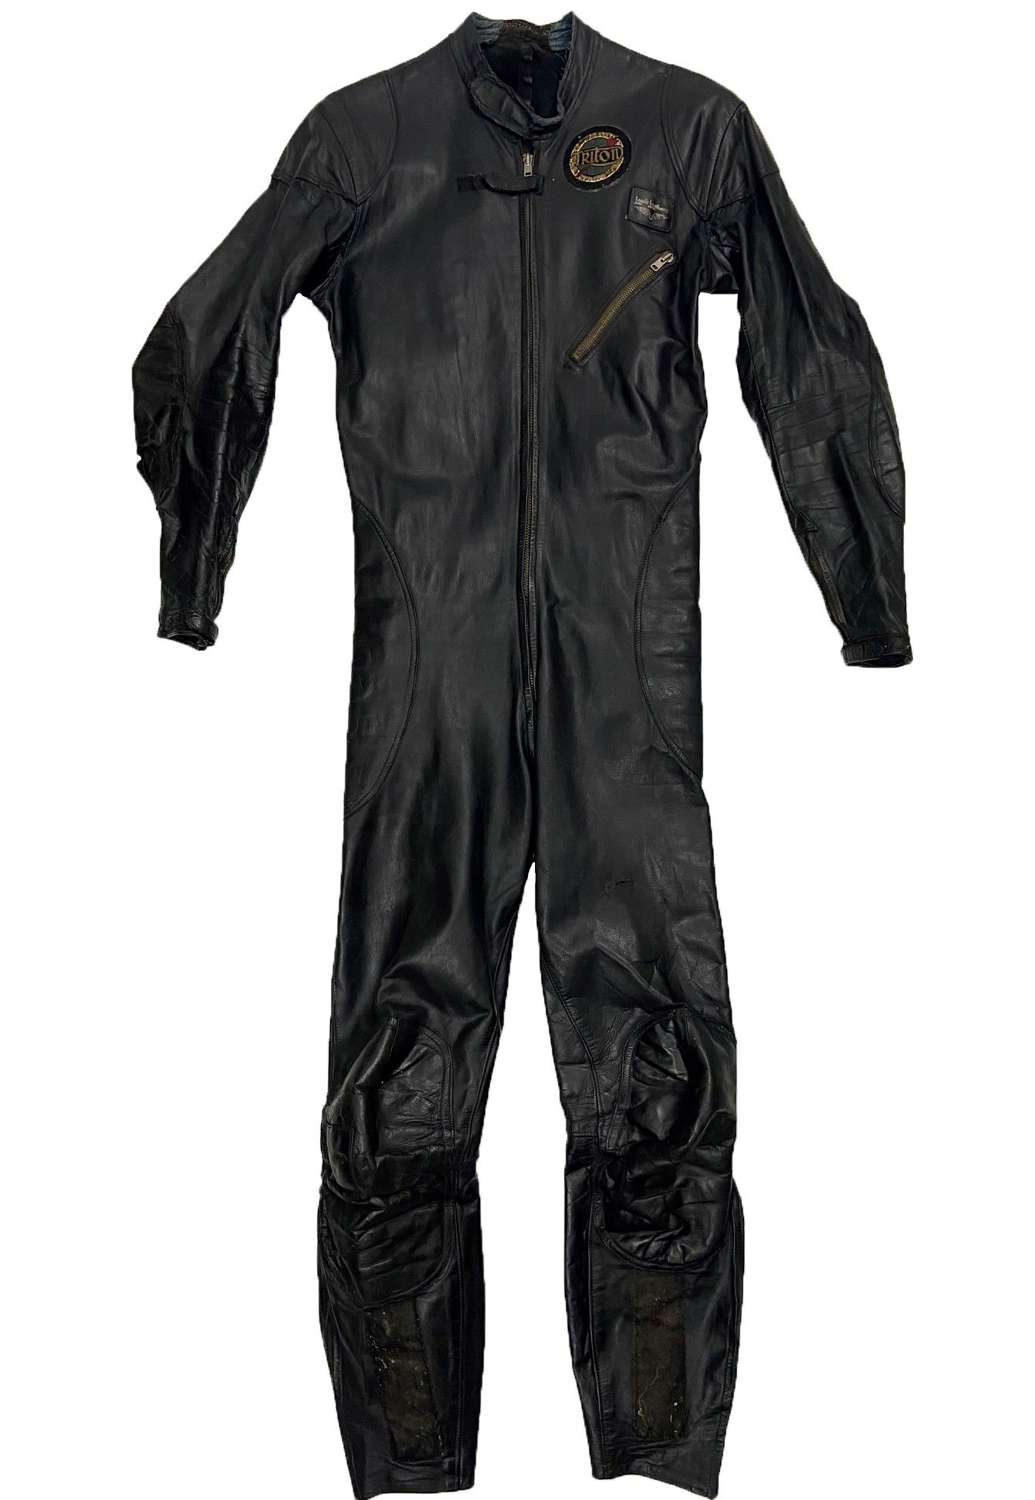 Original 1950s Lewis Leathers One Piece Racing Suit - Size 38